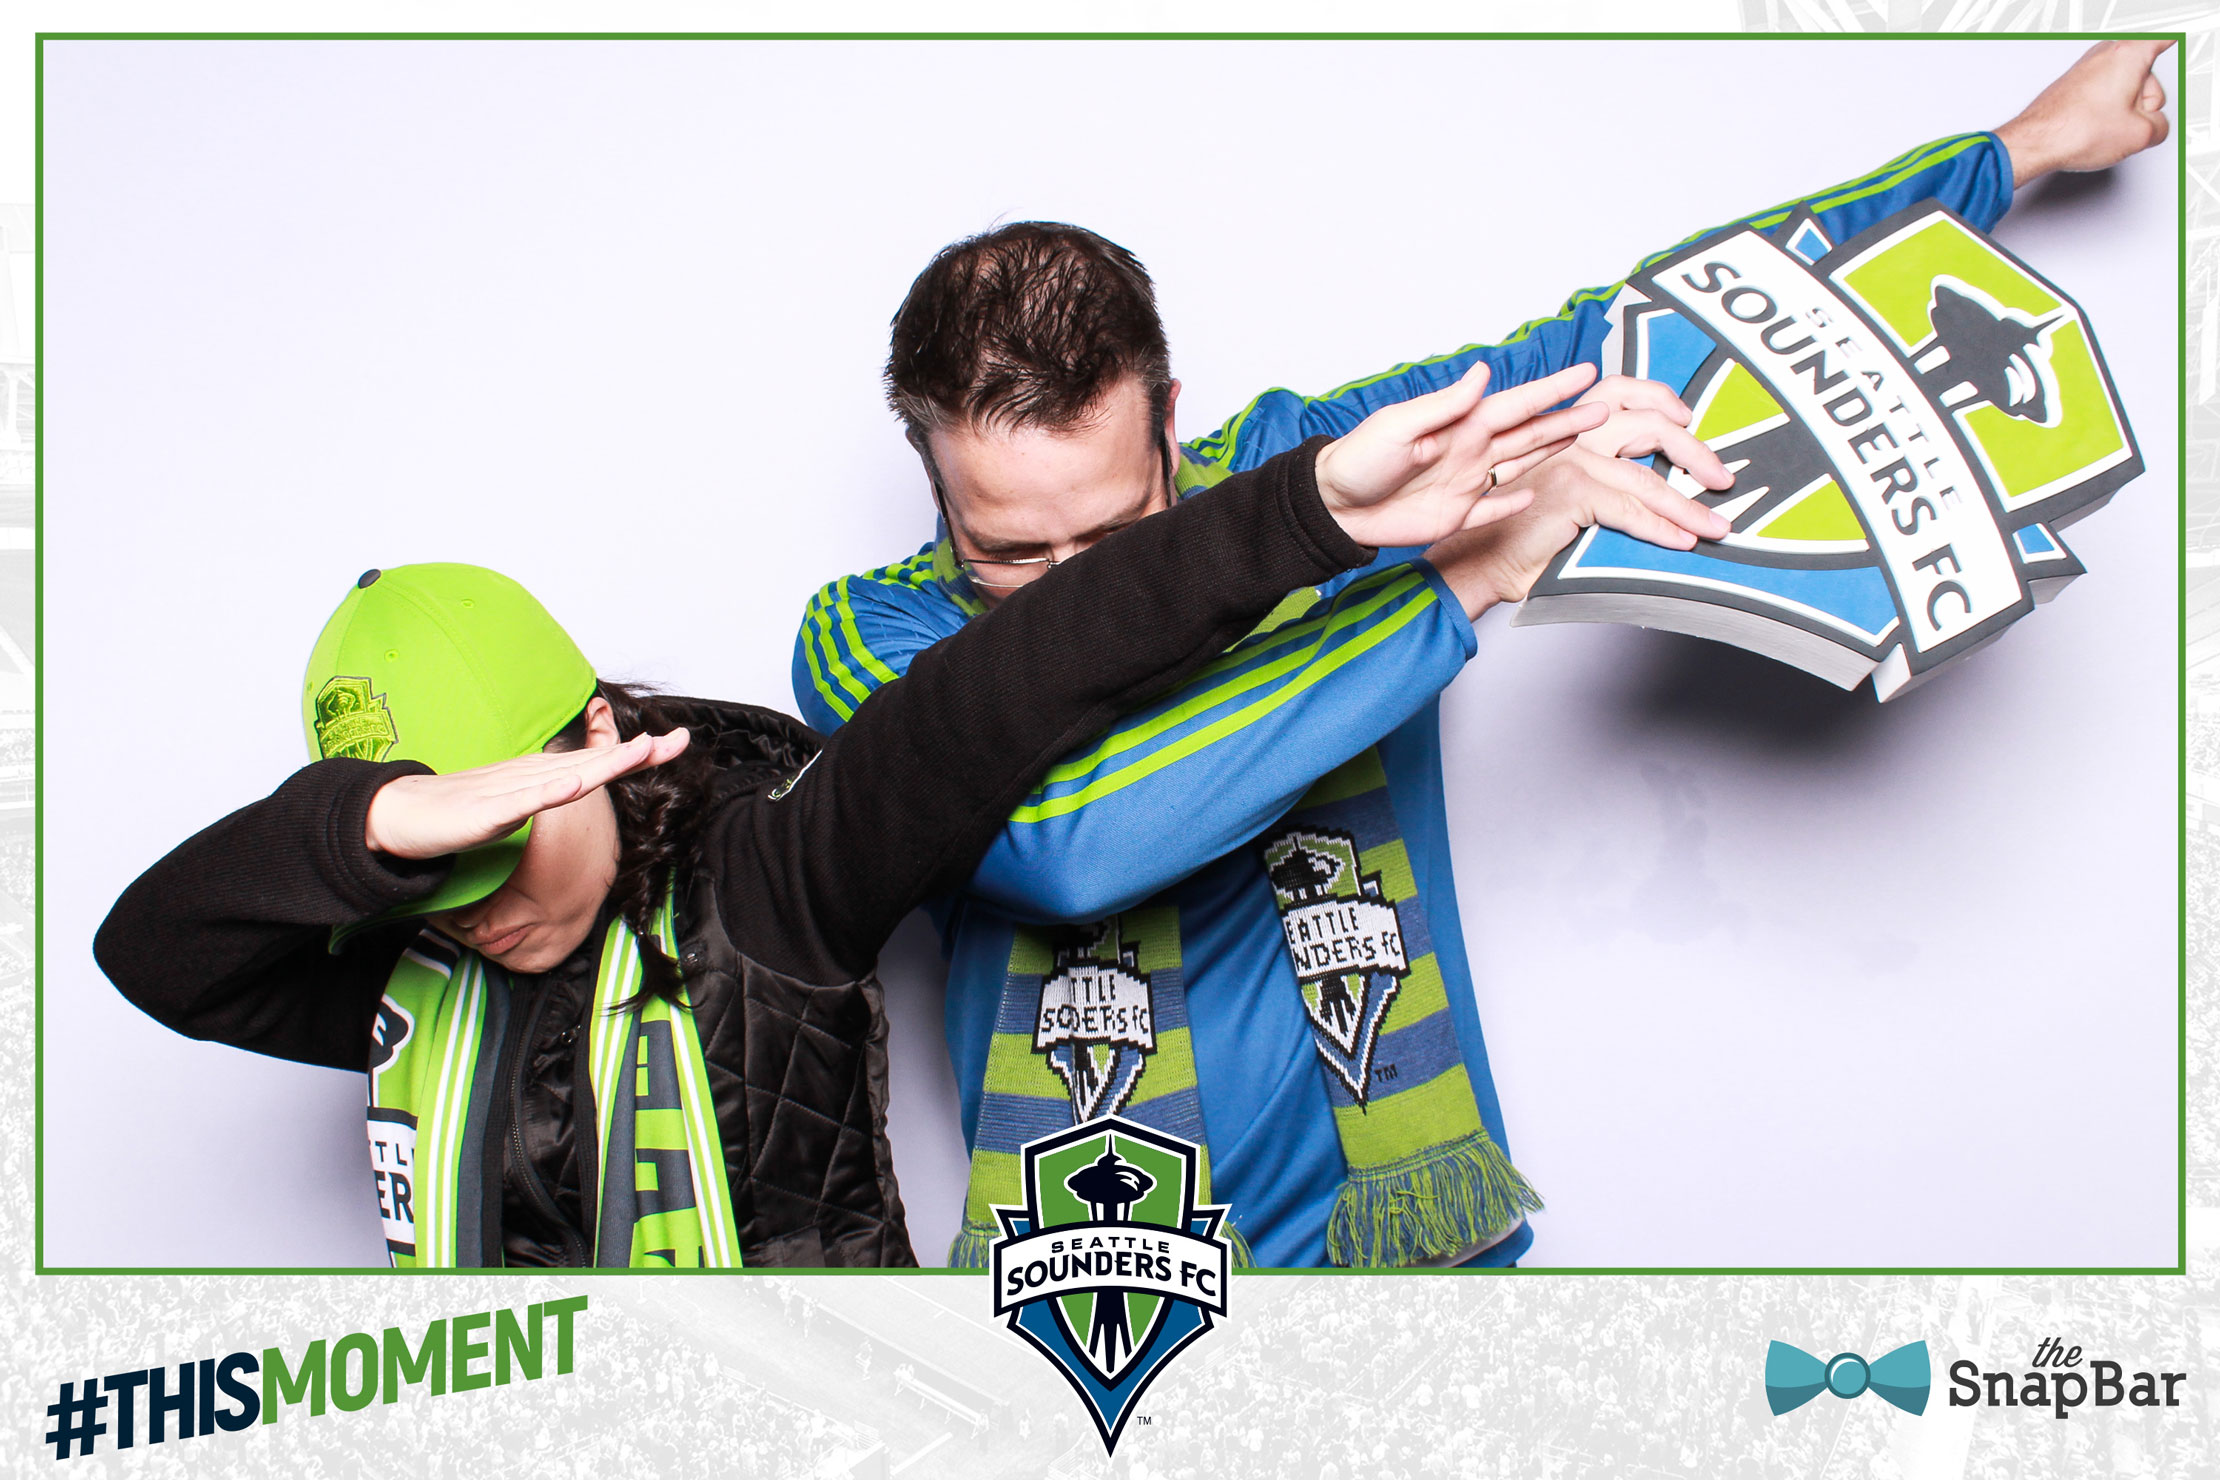 #thismoment Sounders Photo Booth